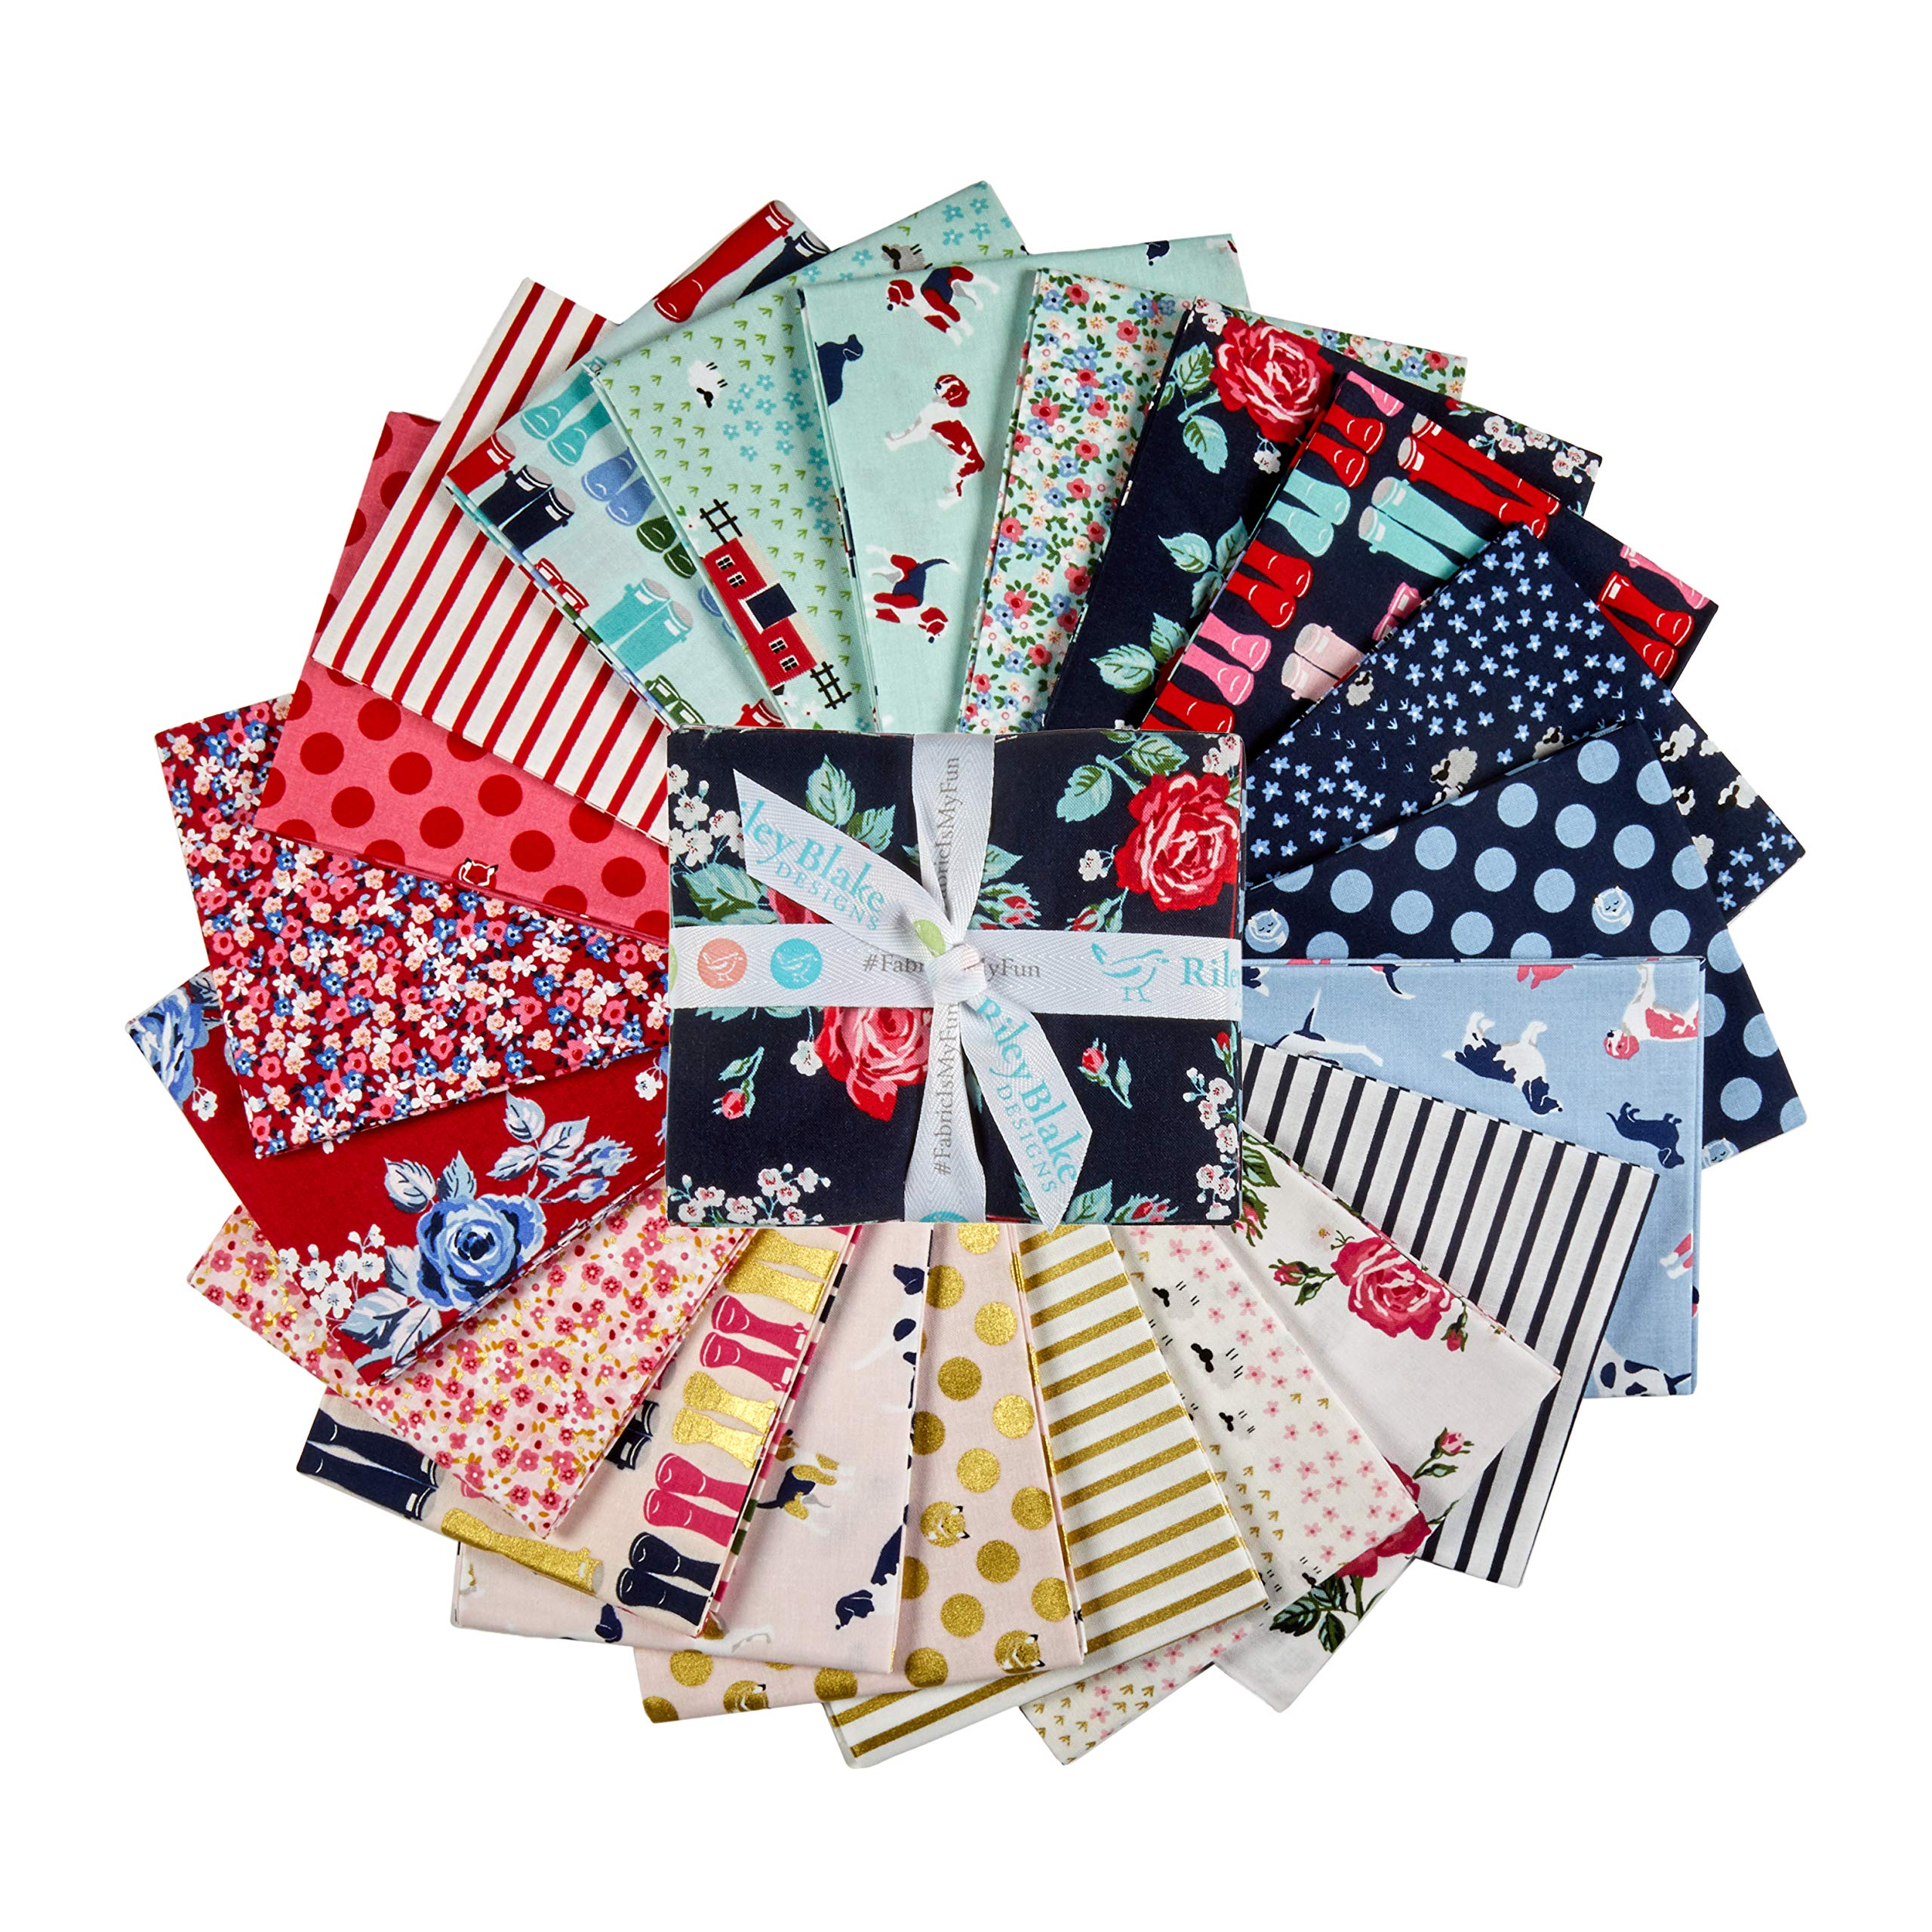 Riley Blake Designs Fox Farm Fat Quarter Bundle 21 Pcs. Multi